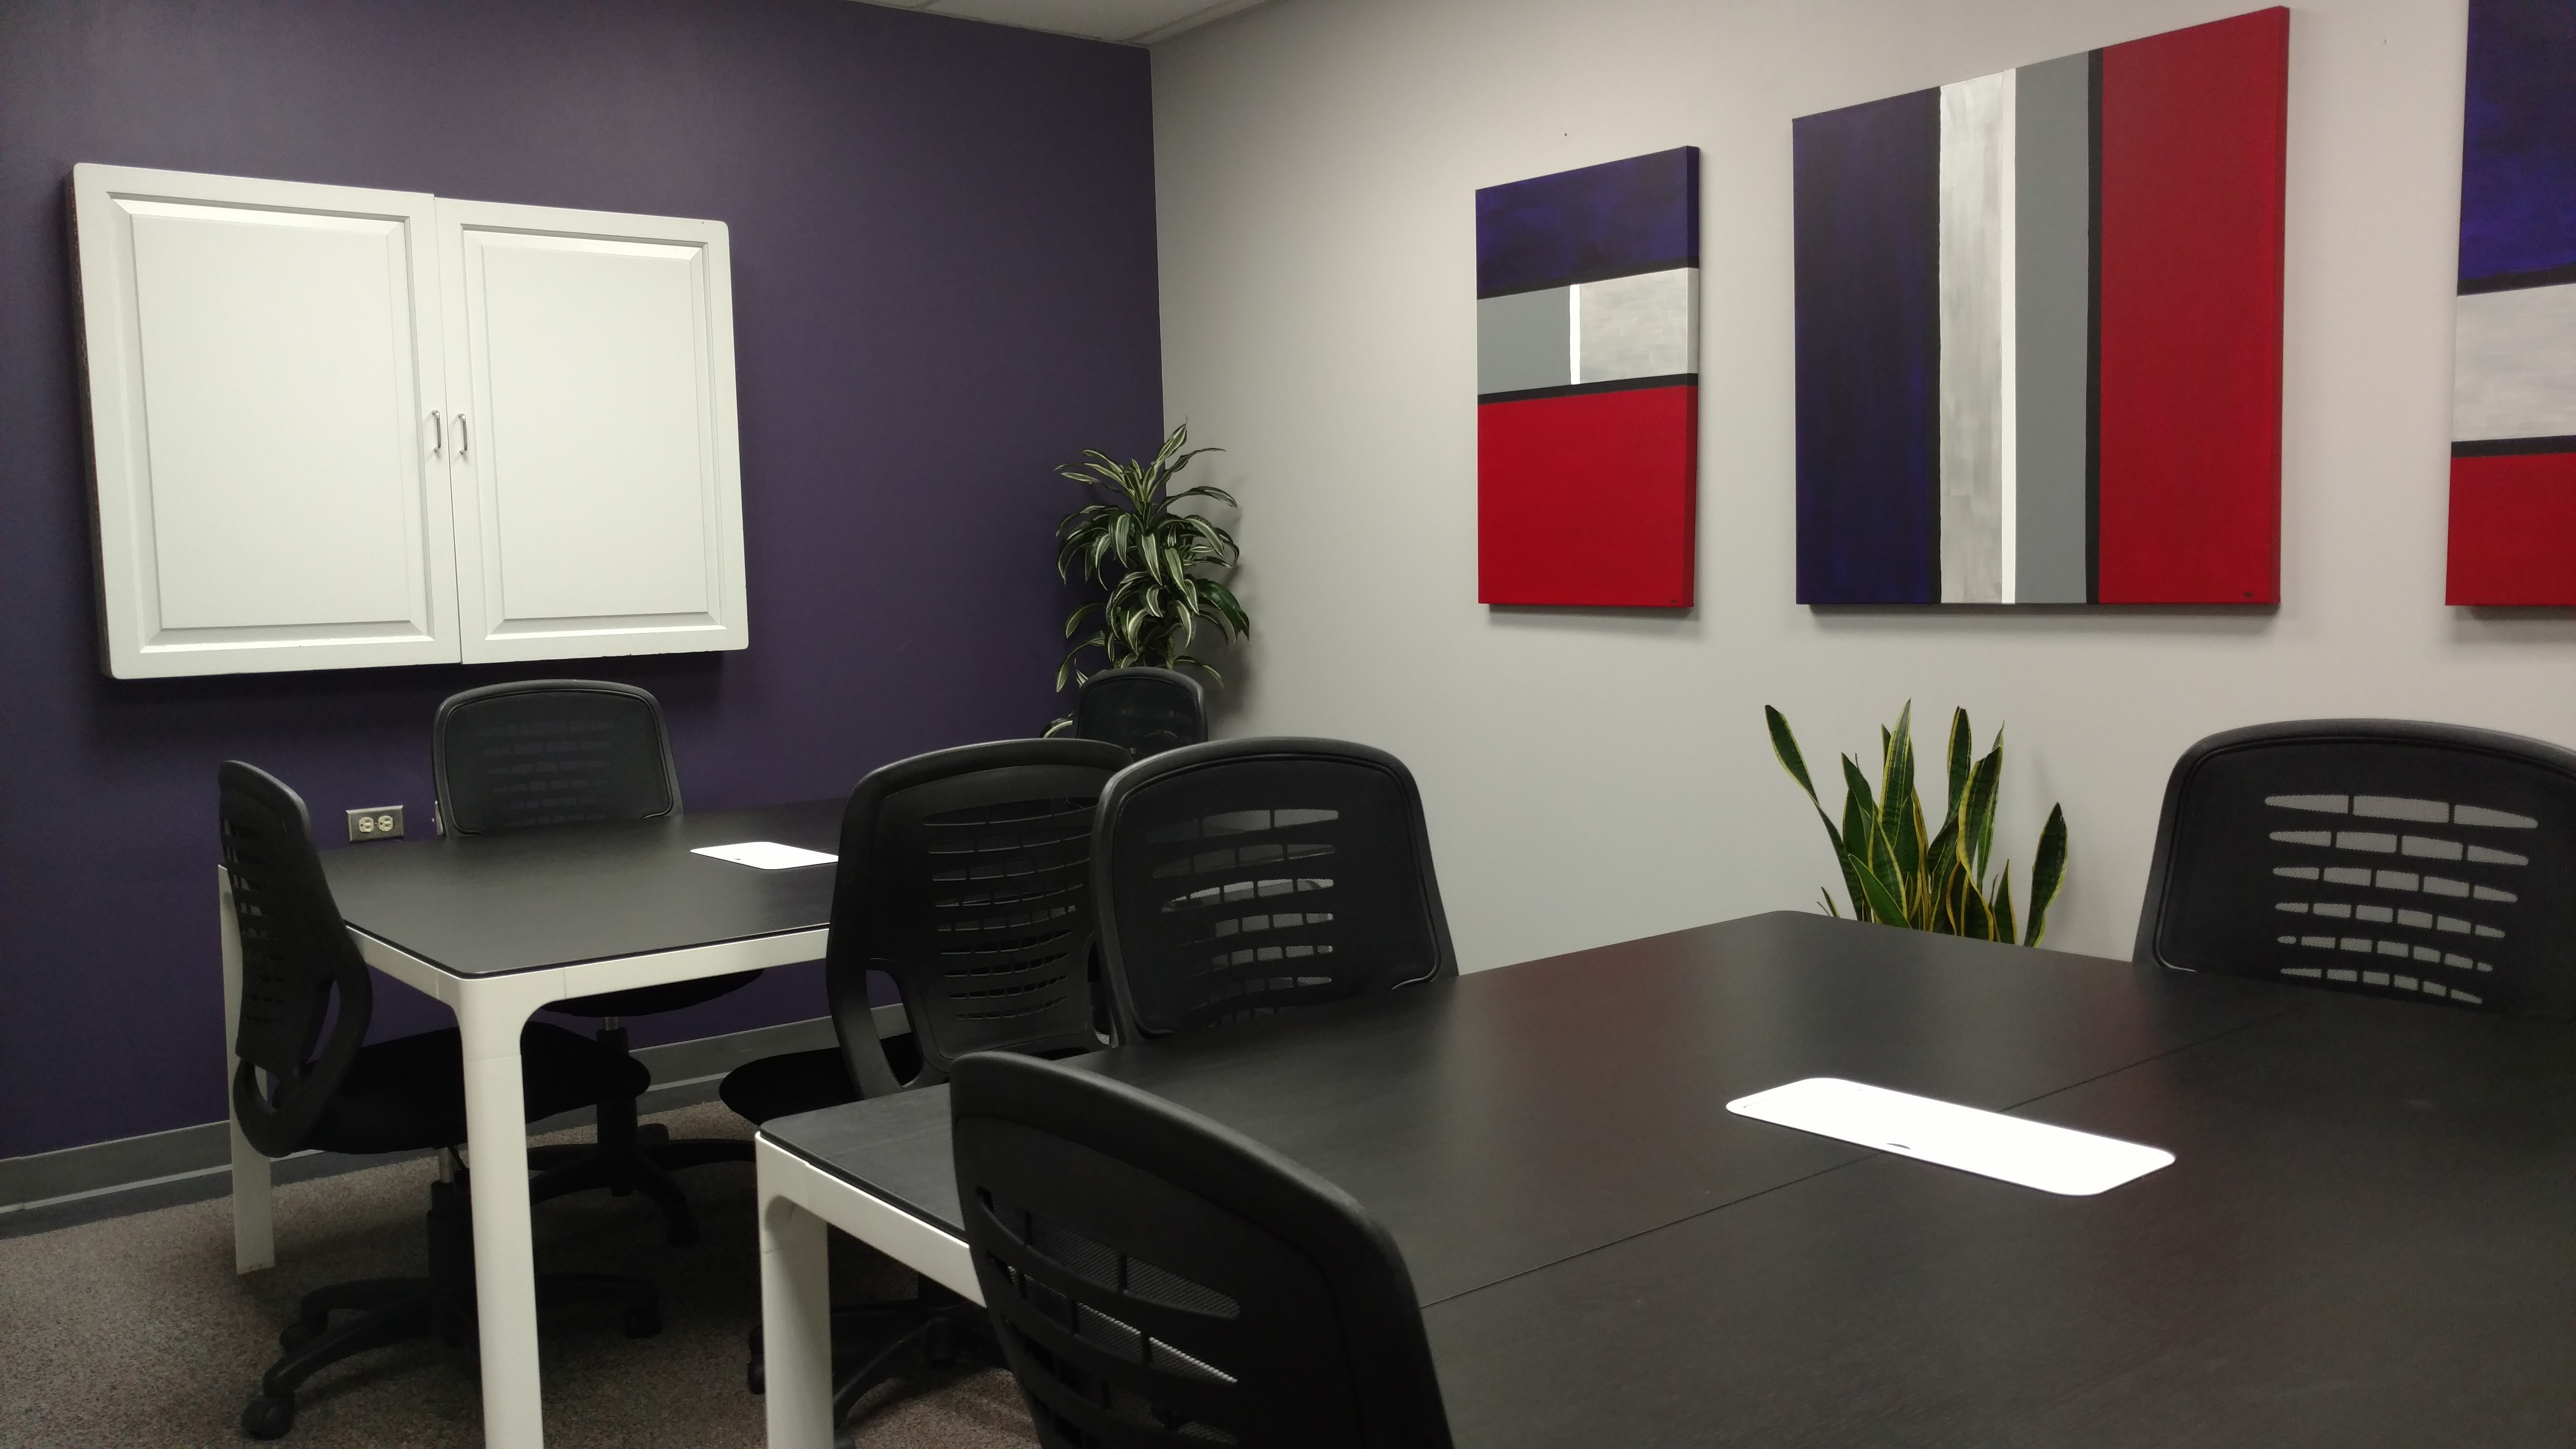 Blog Series Updating Our Nashville Office Space Post 2